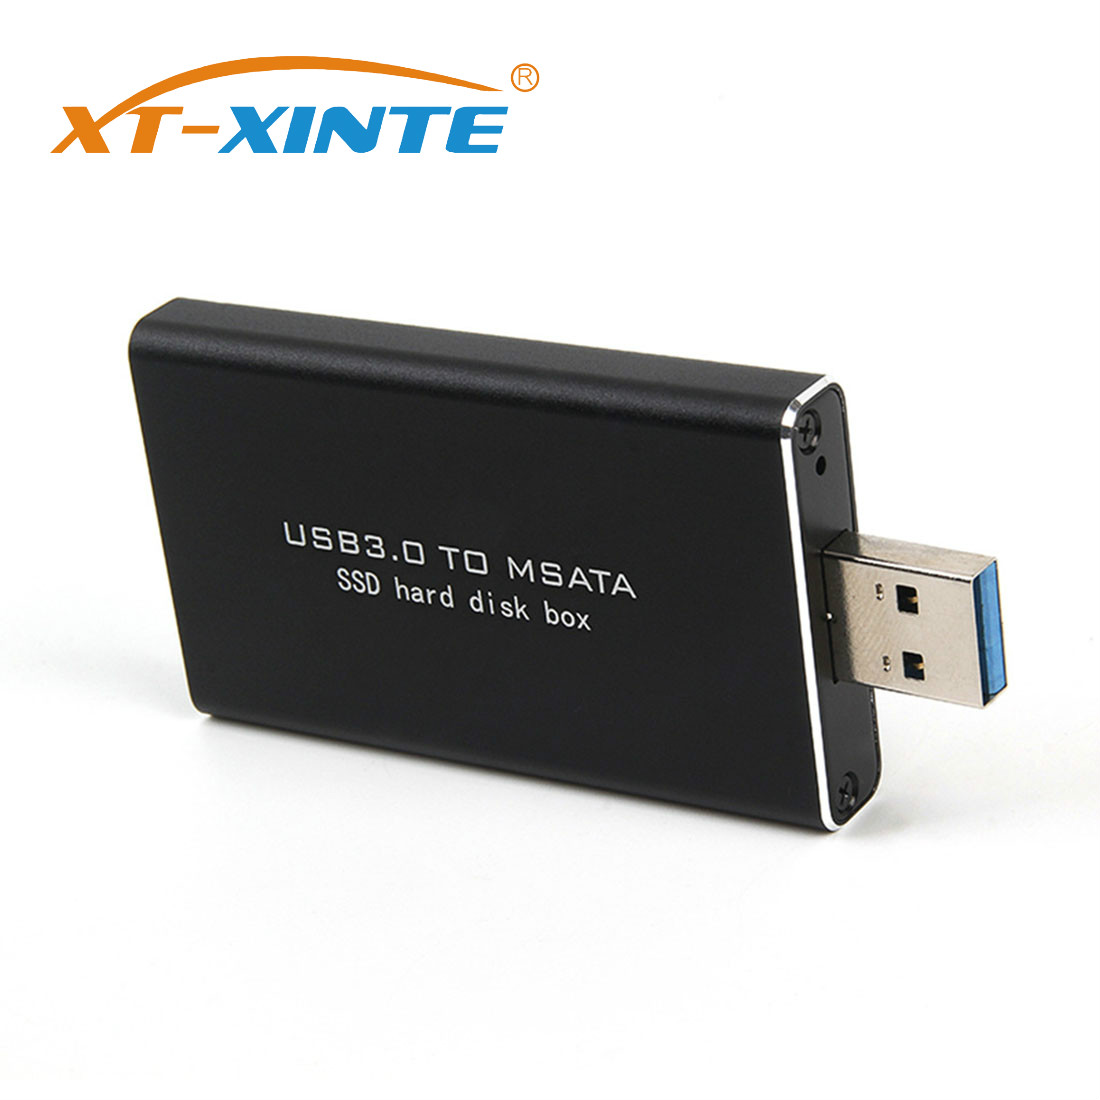 XT-XINTE 5Gbps USB 3.0 To MSATA SSD Enclosure USB3.0 To Mini-SATA Hard Disk Adapter M2 SSD External HDD Mobile Box